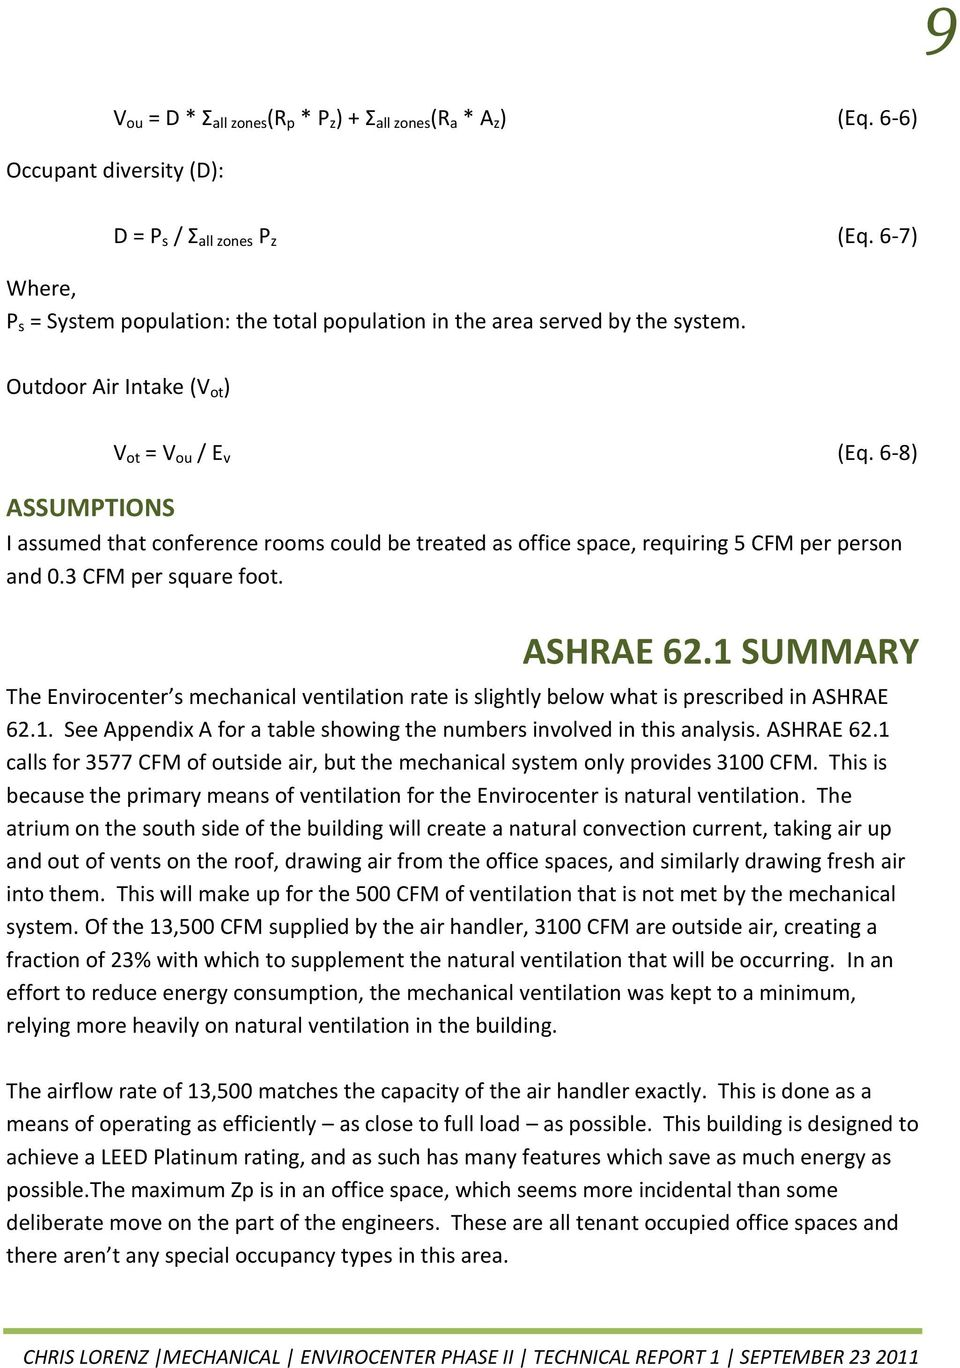 Envirocenter phase ii technical report 1 jessup maryland for Ashrae 62 1 table 6 1